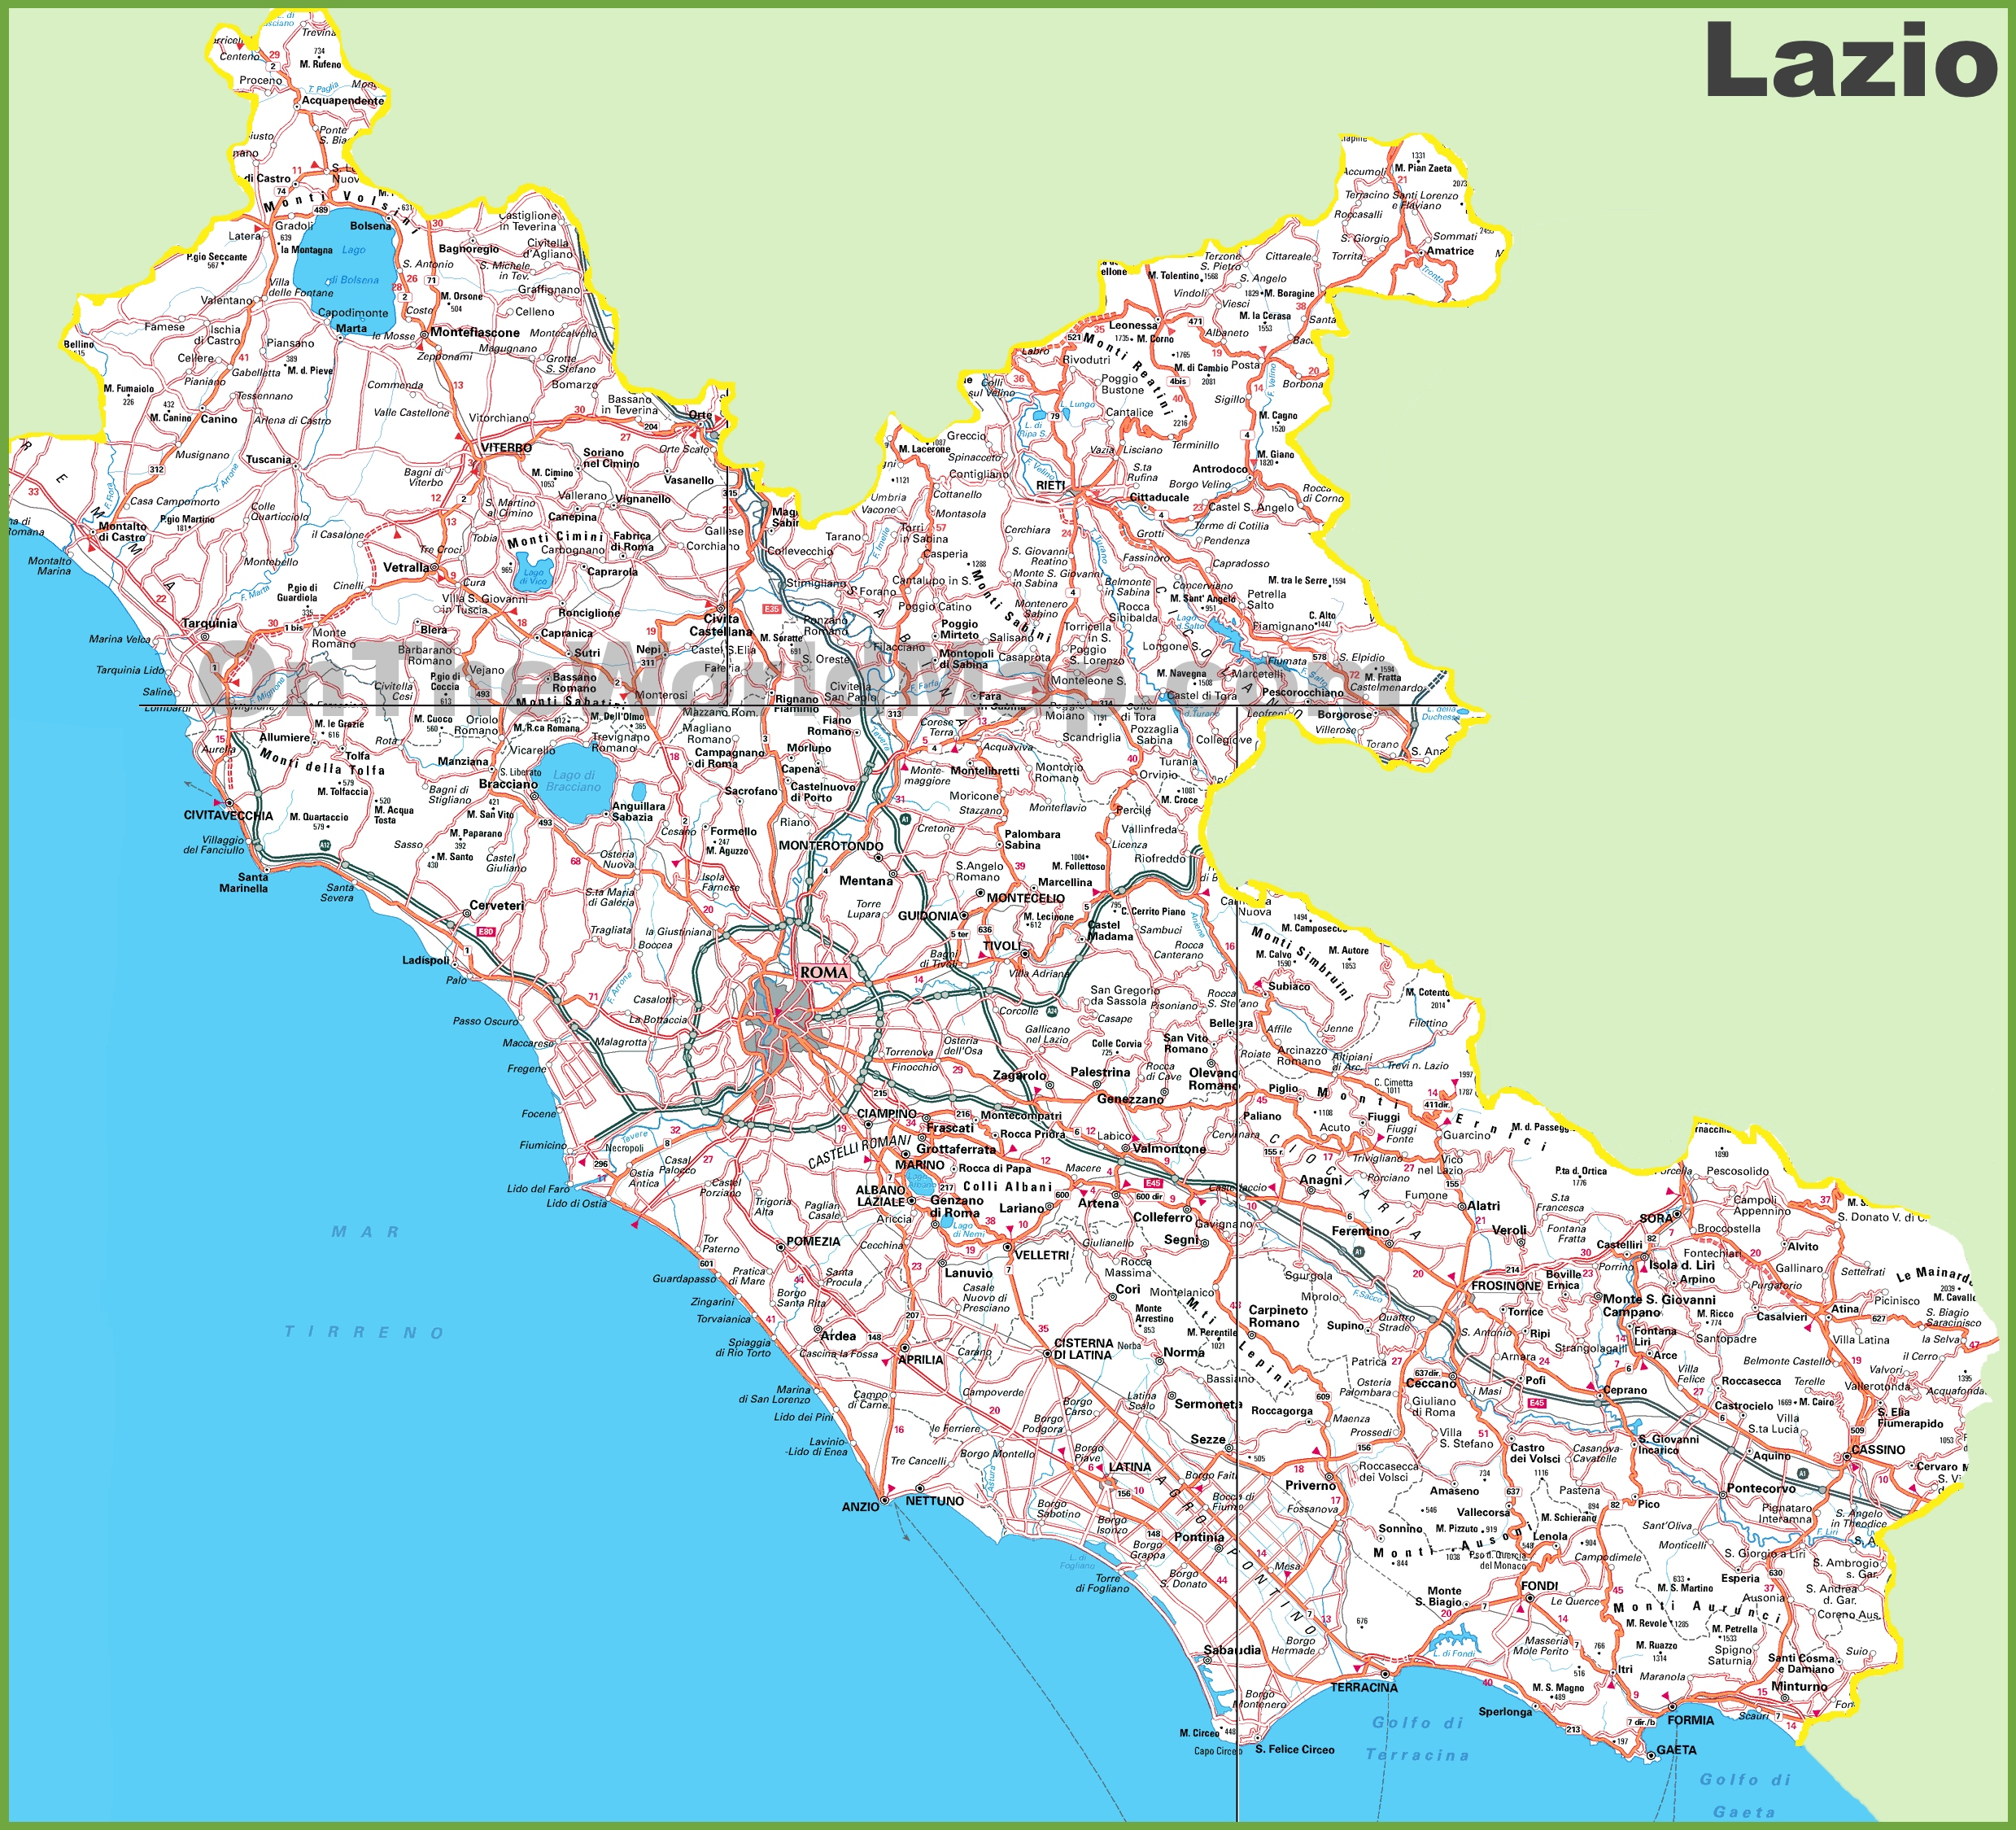 Map Of Italy With Towns.Large Detailed Map Of Lazio With Cities And Towns